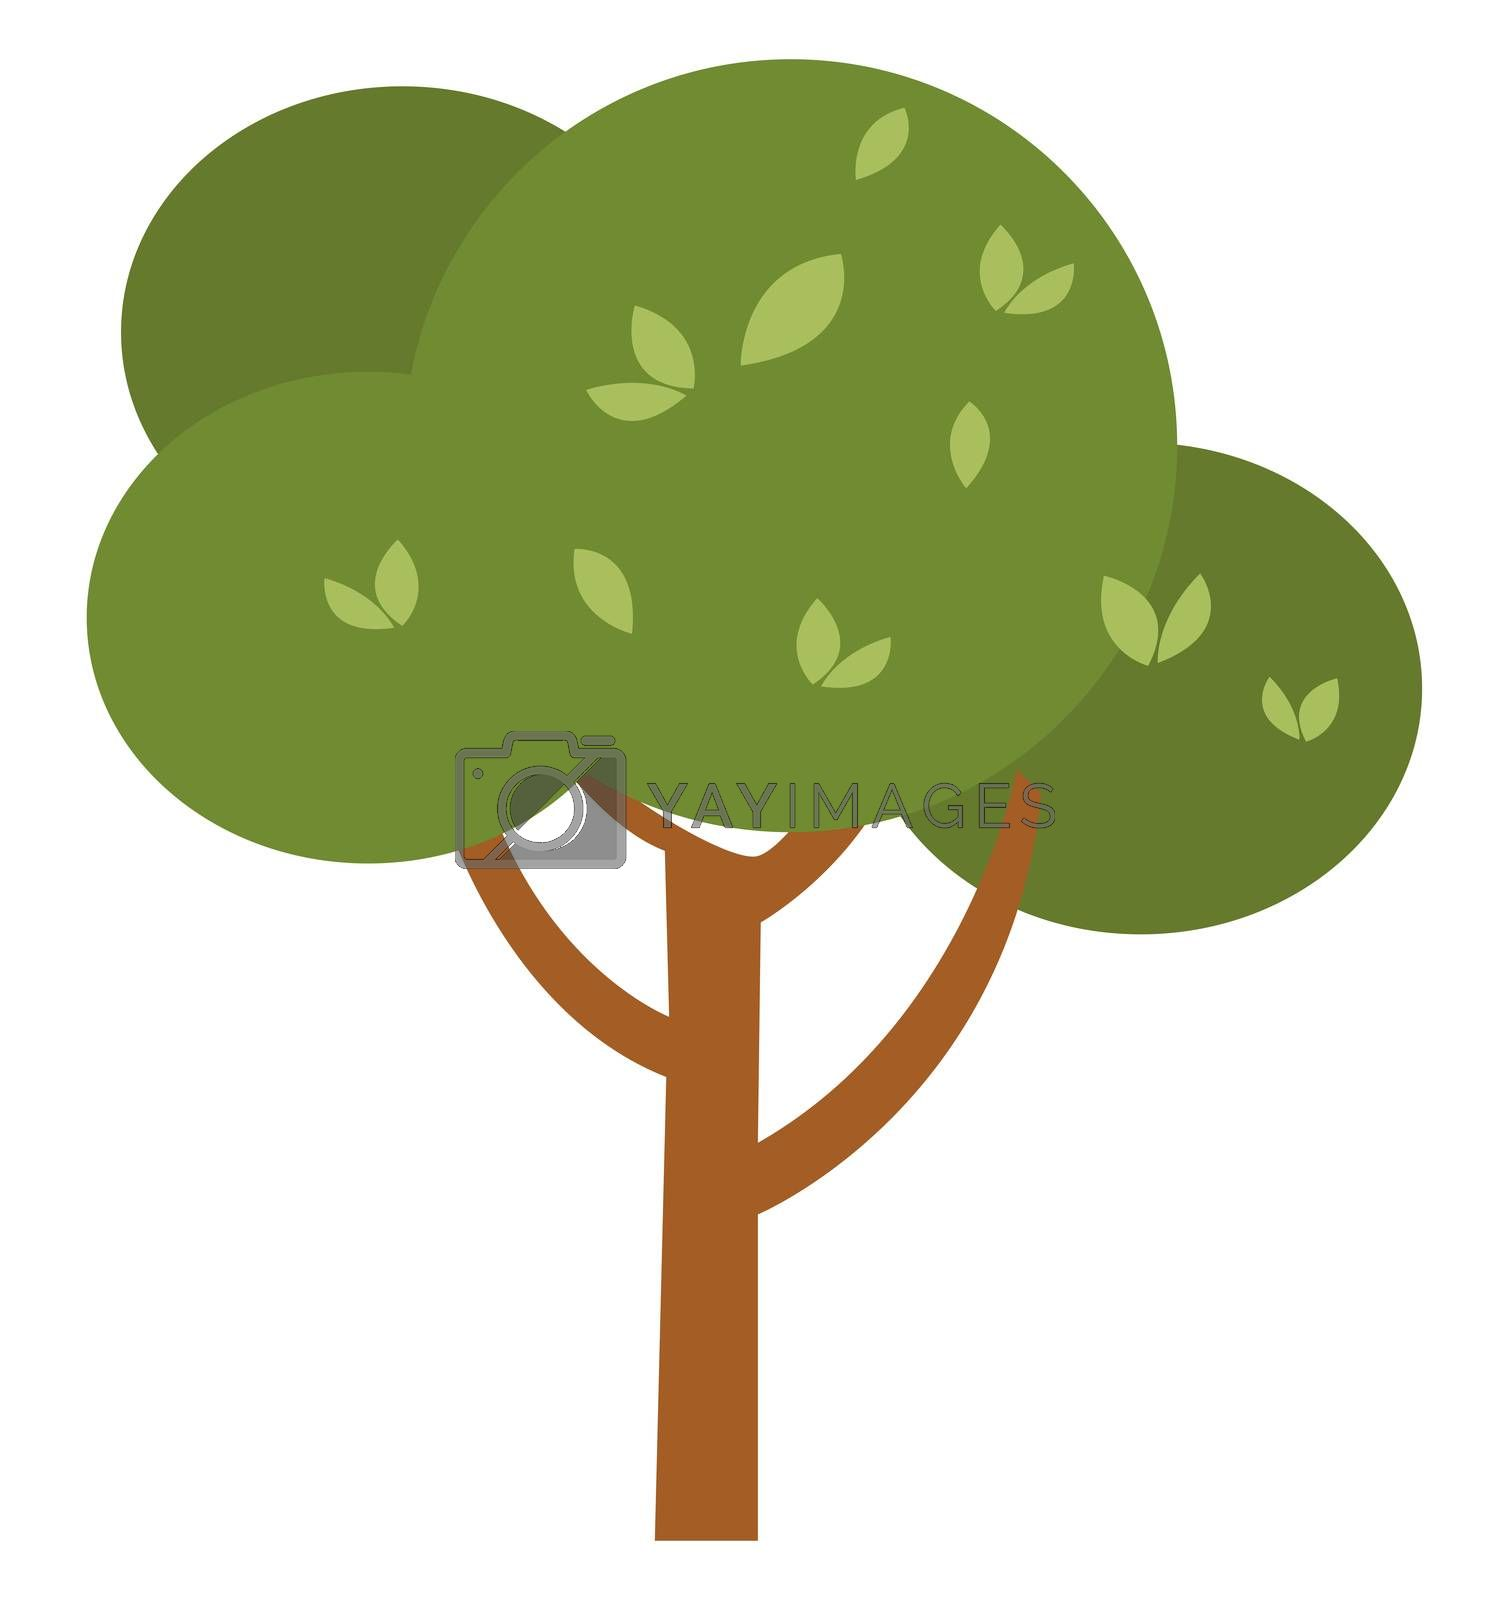 Green tree, illustration, vector on white background